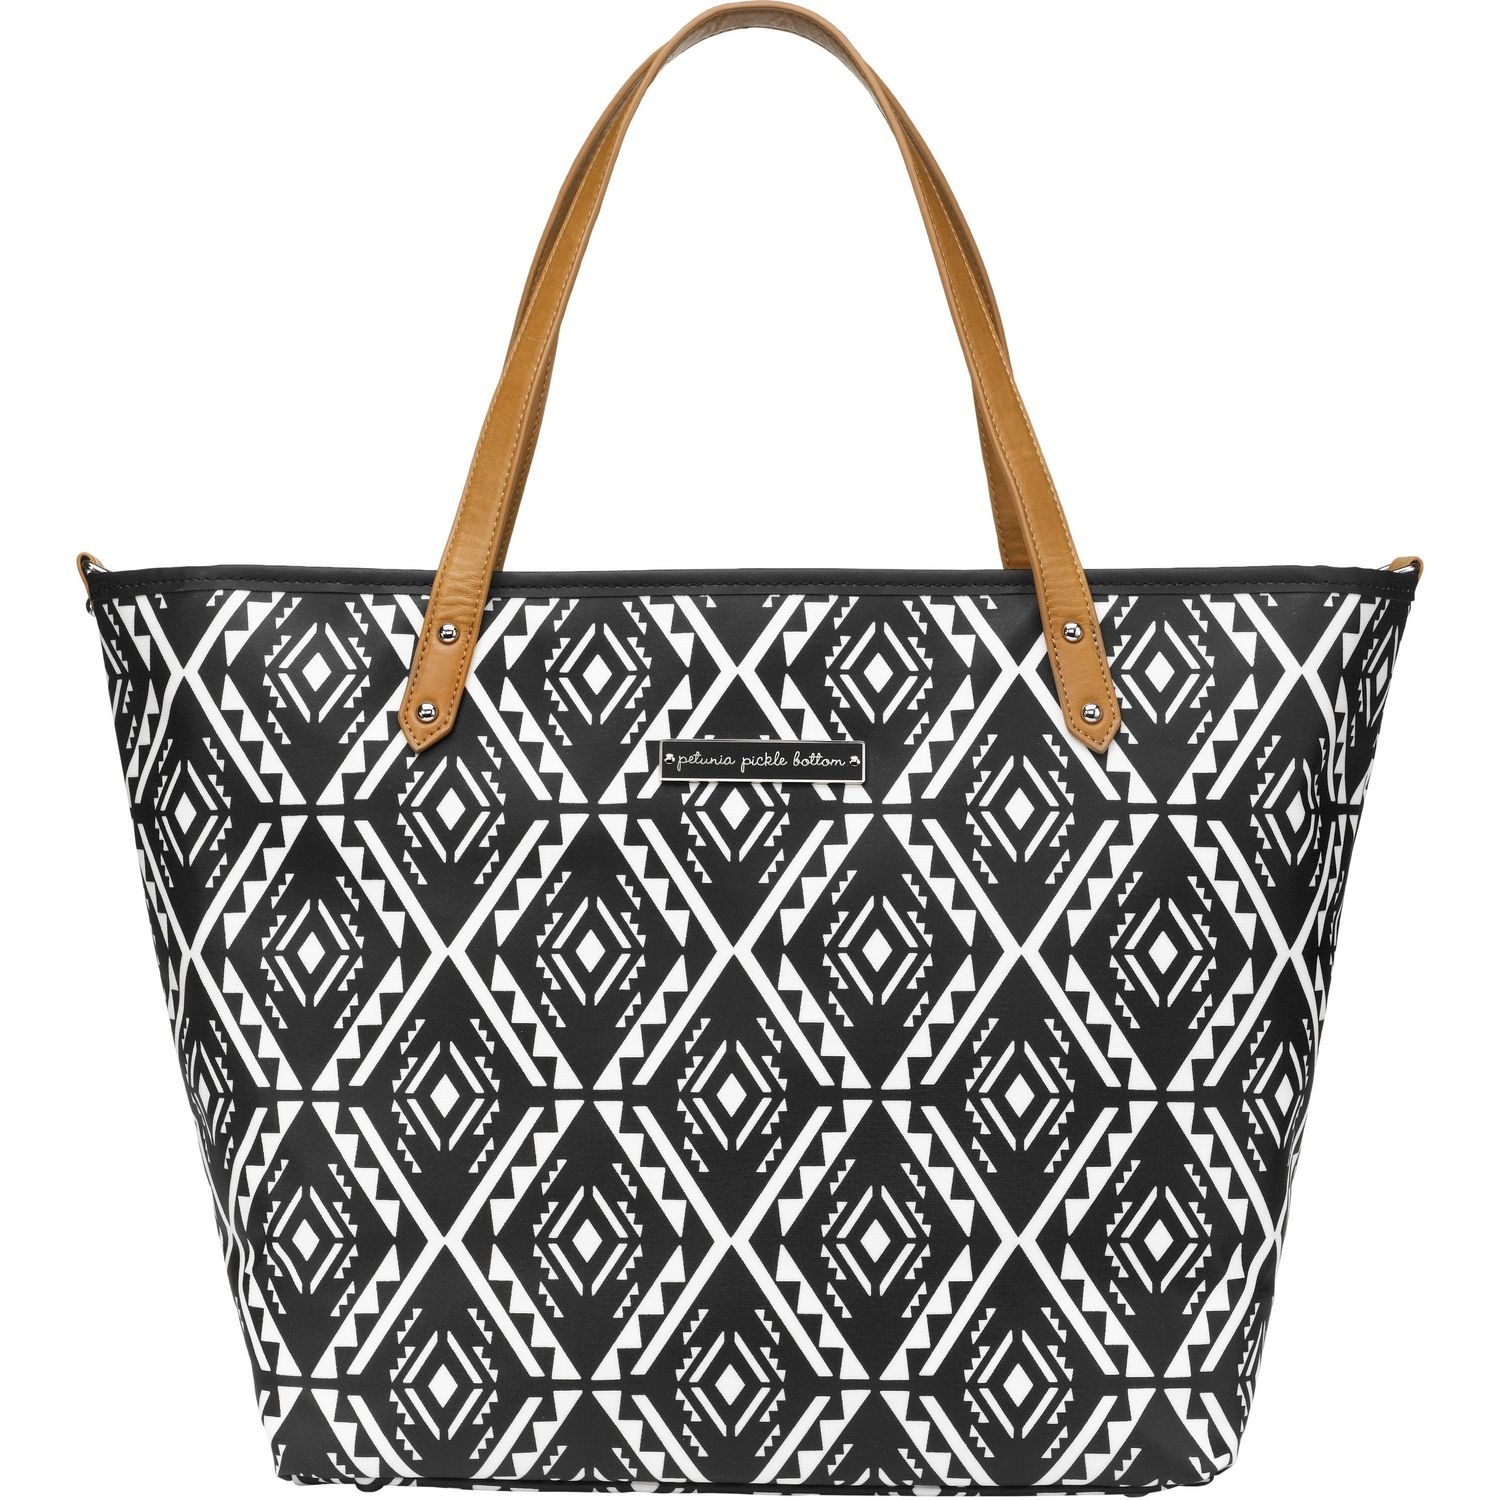 Petunia Pickle Bottom Downtown Tote - Secrets of Salvador